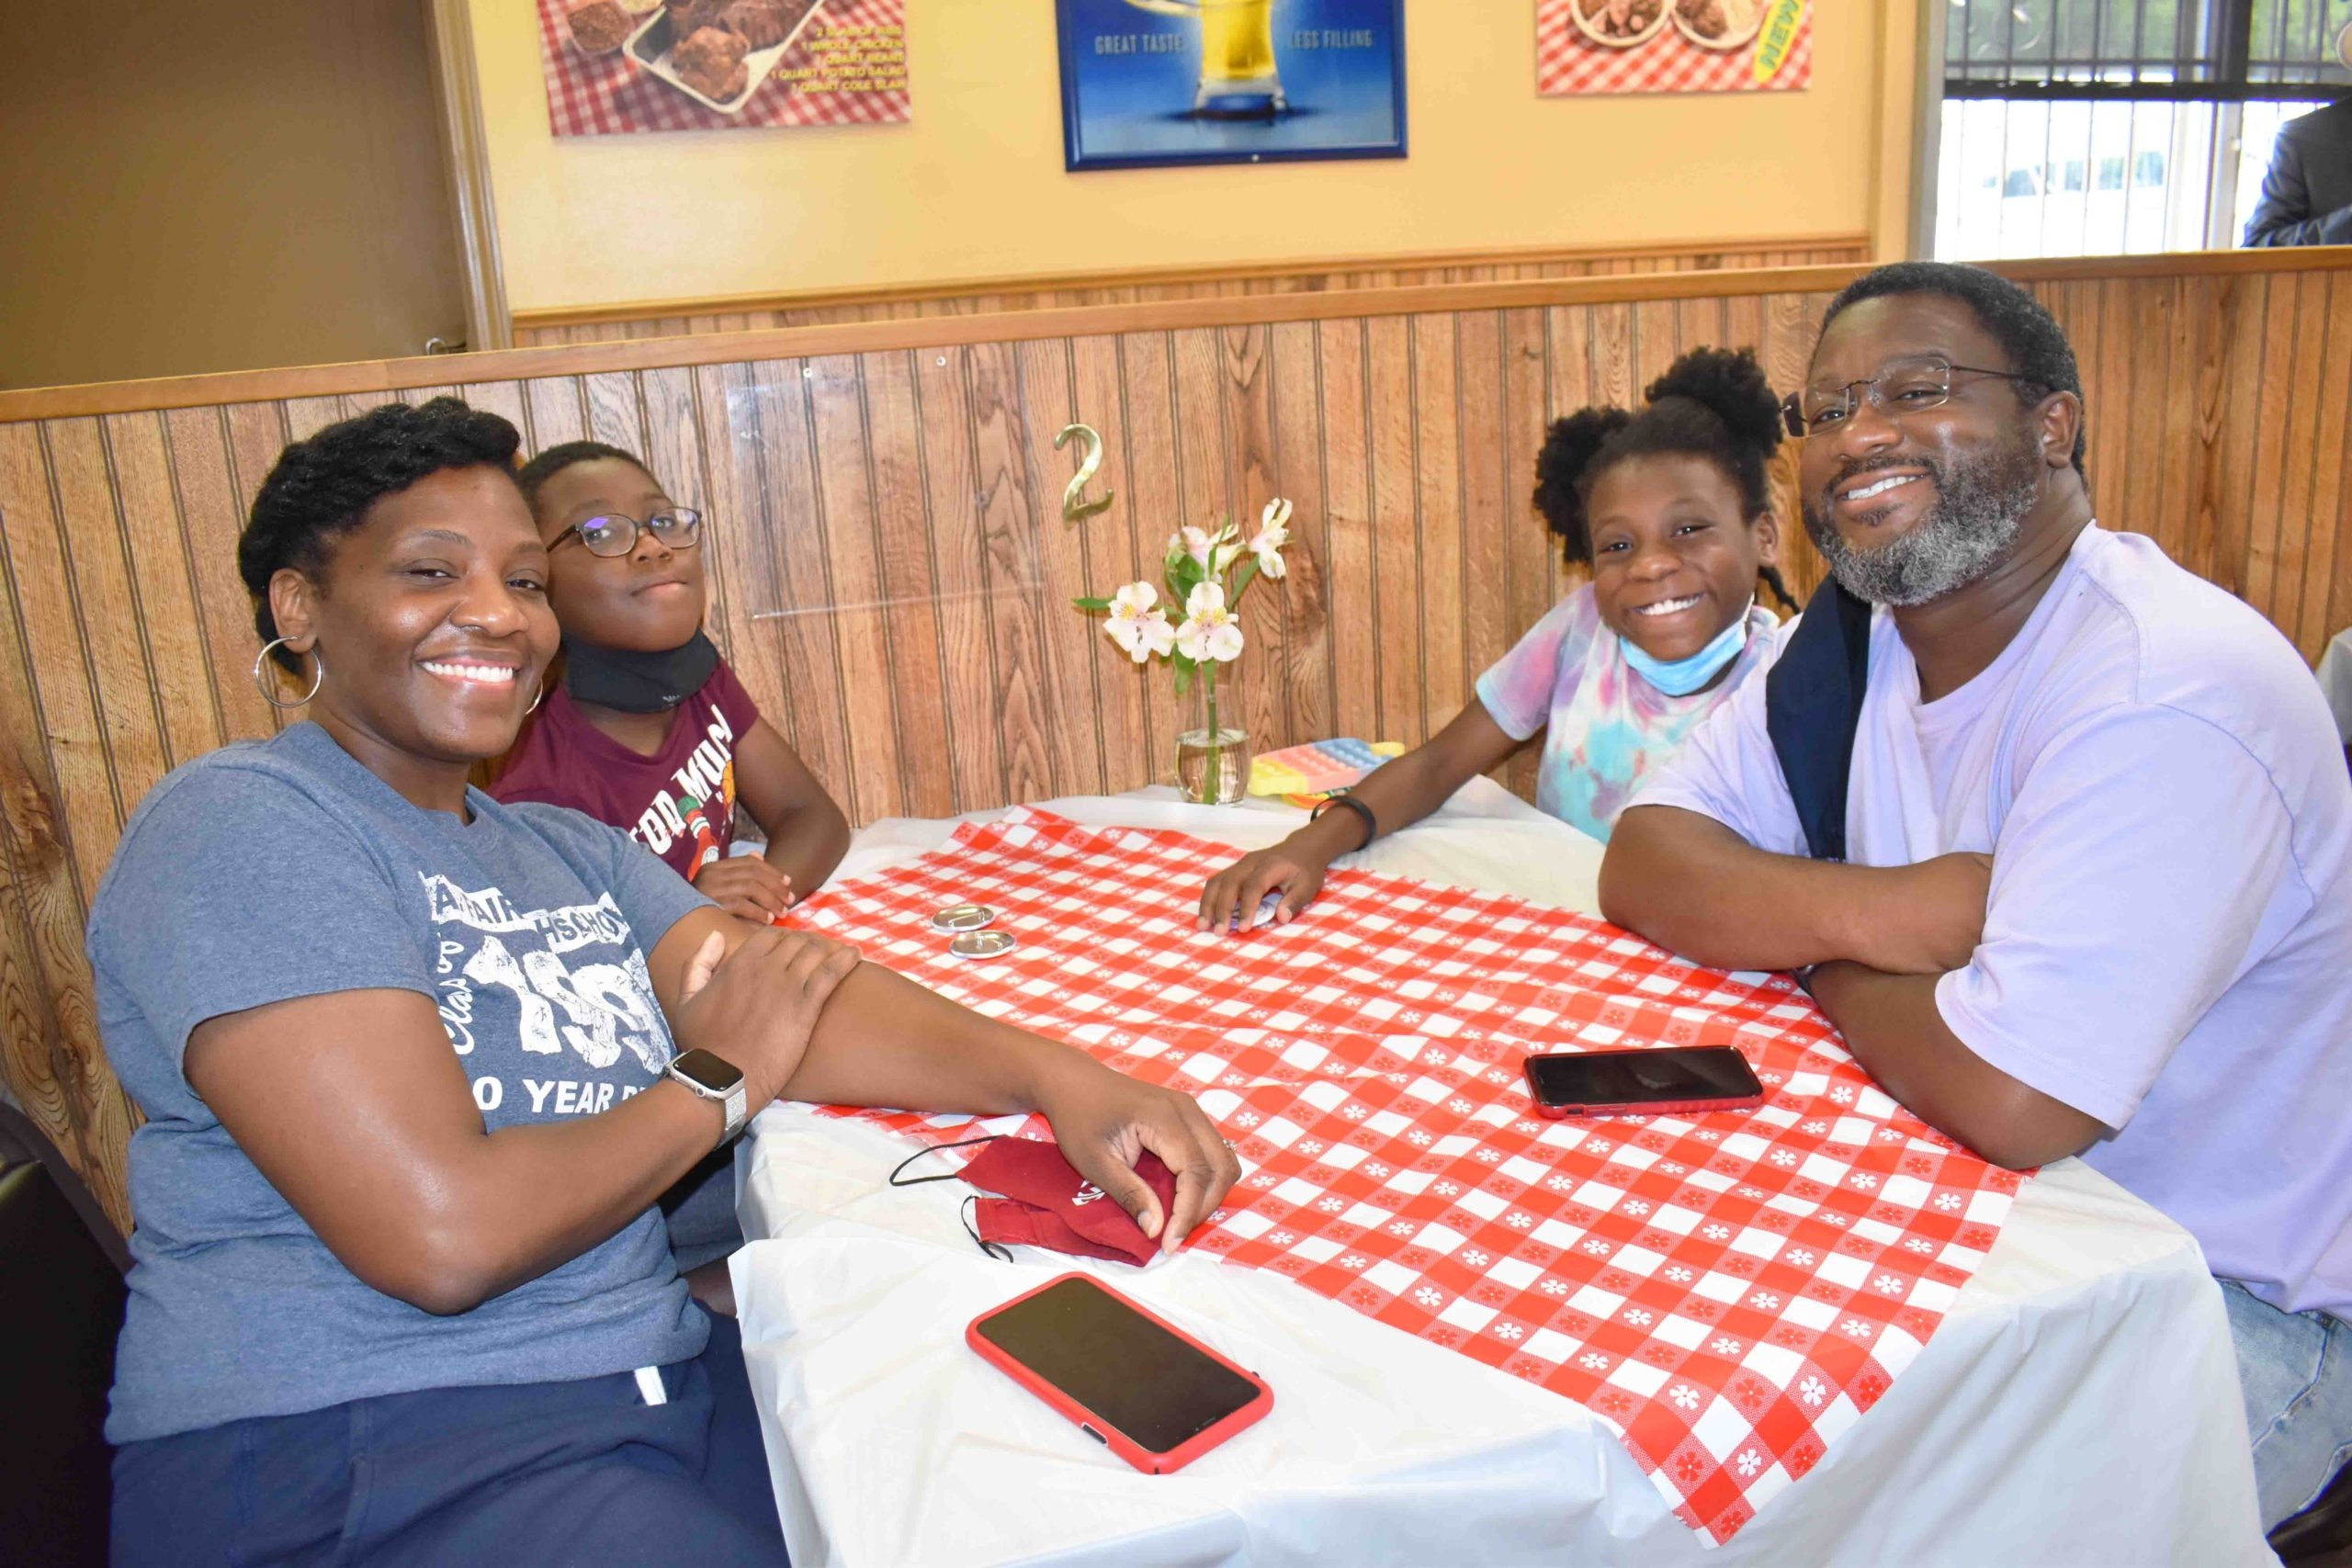 Tamika, Quincy, III, Abby, & Quincy Edwards